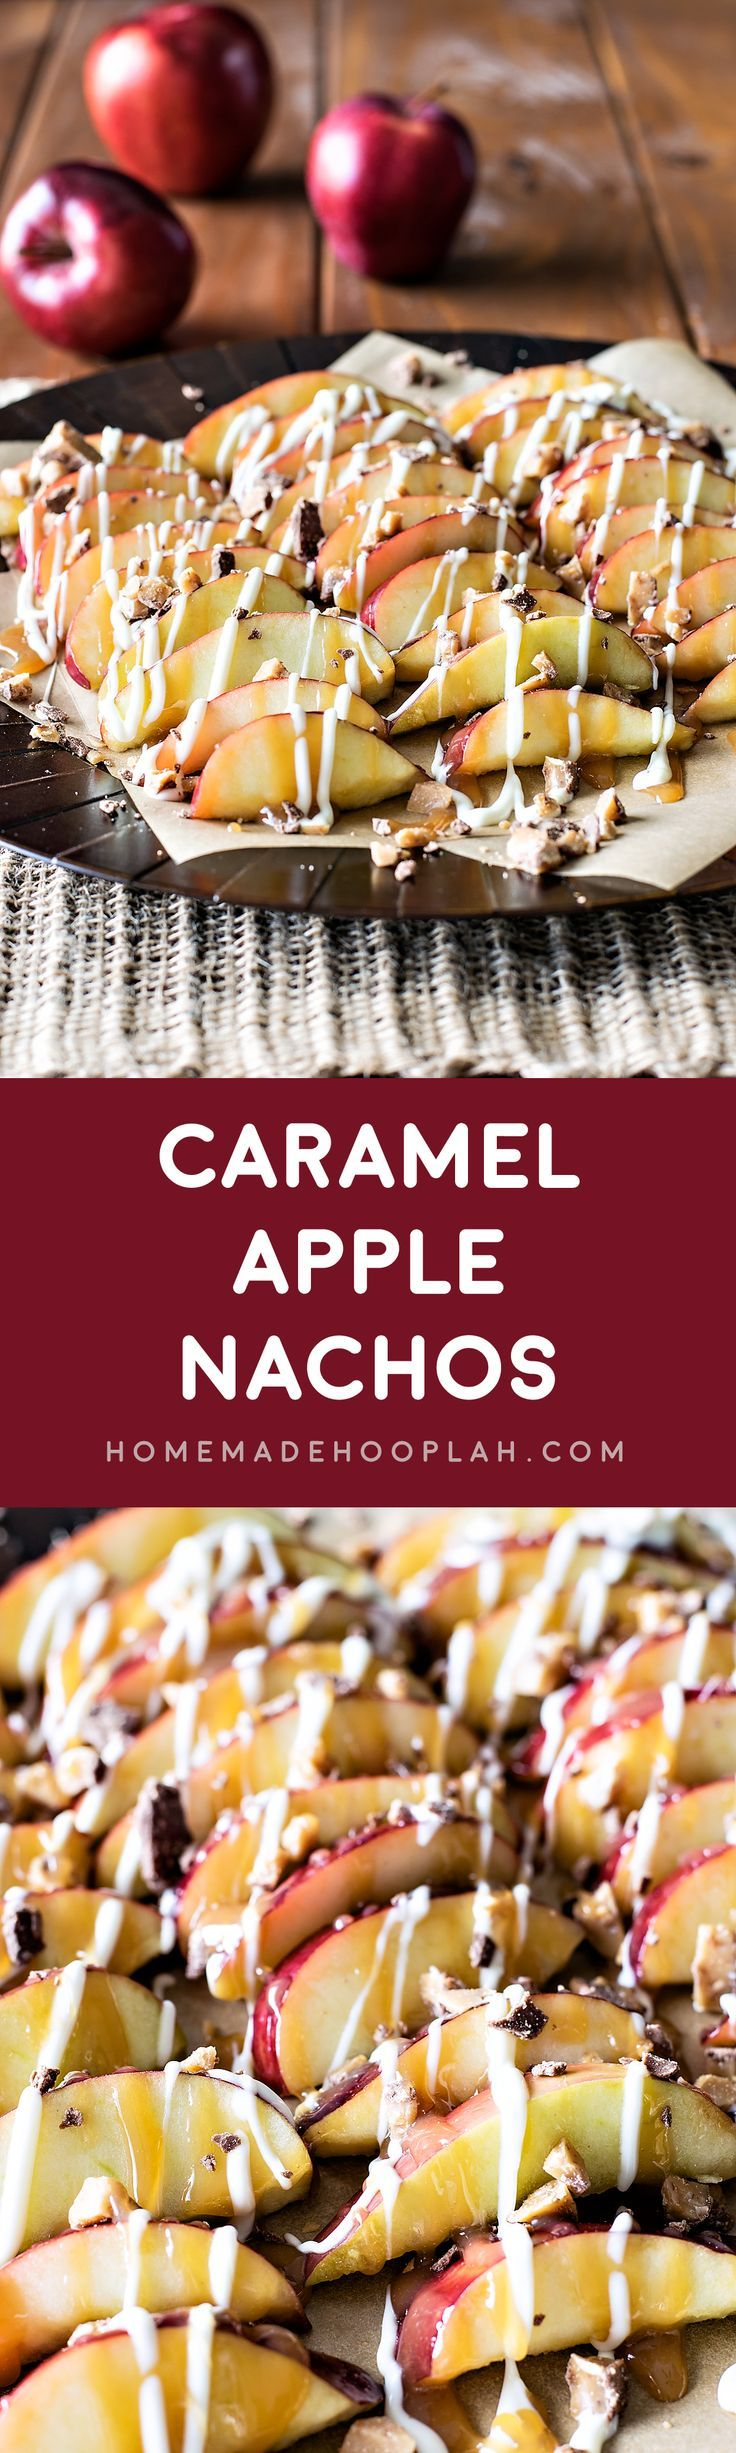 Caramel Apple Nachos! Have your candy apple the easy way - diced up into bite sized pieces then topped with caramel sauce, white chocolate, and crumbled Heath candy bars. | HomemadeHooplah.com